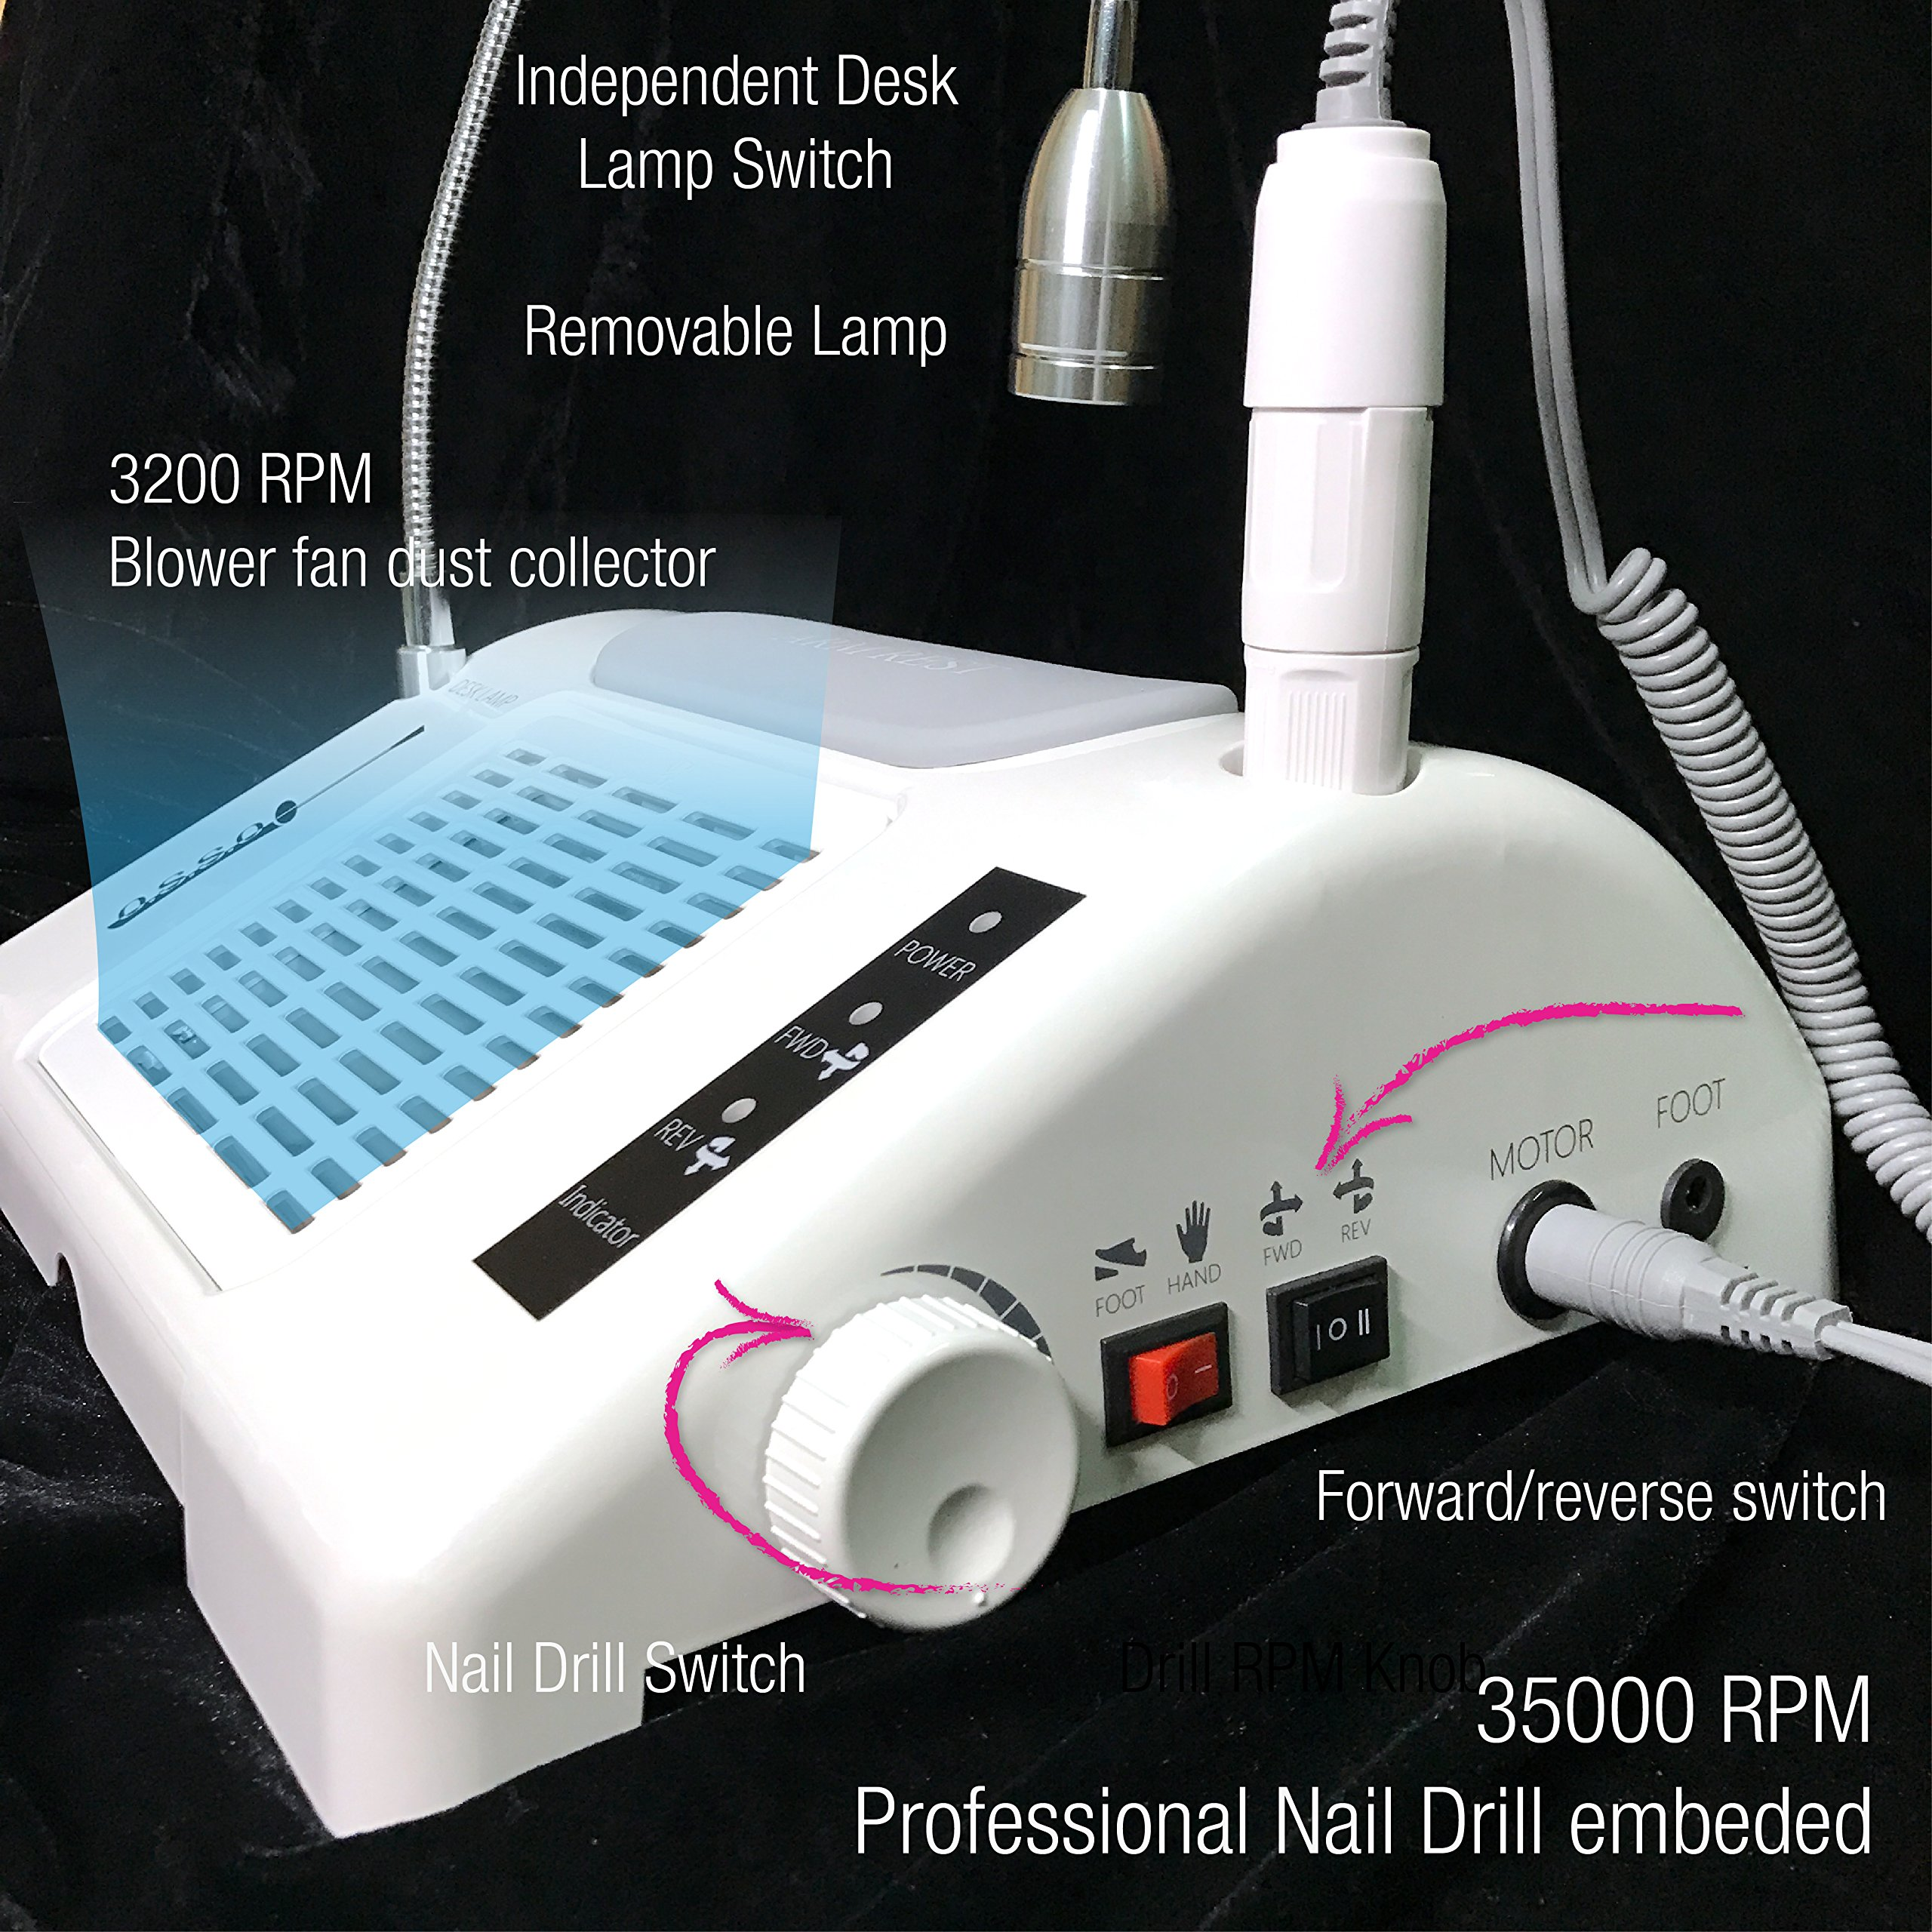 35000 RPM Nail Drill Dust Collector Desk Lamp 3-in-1 machine for salon by O.S.S.O Gel (Image #3)